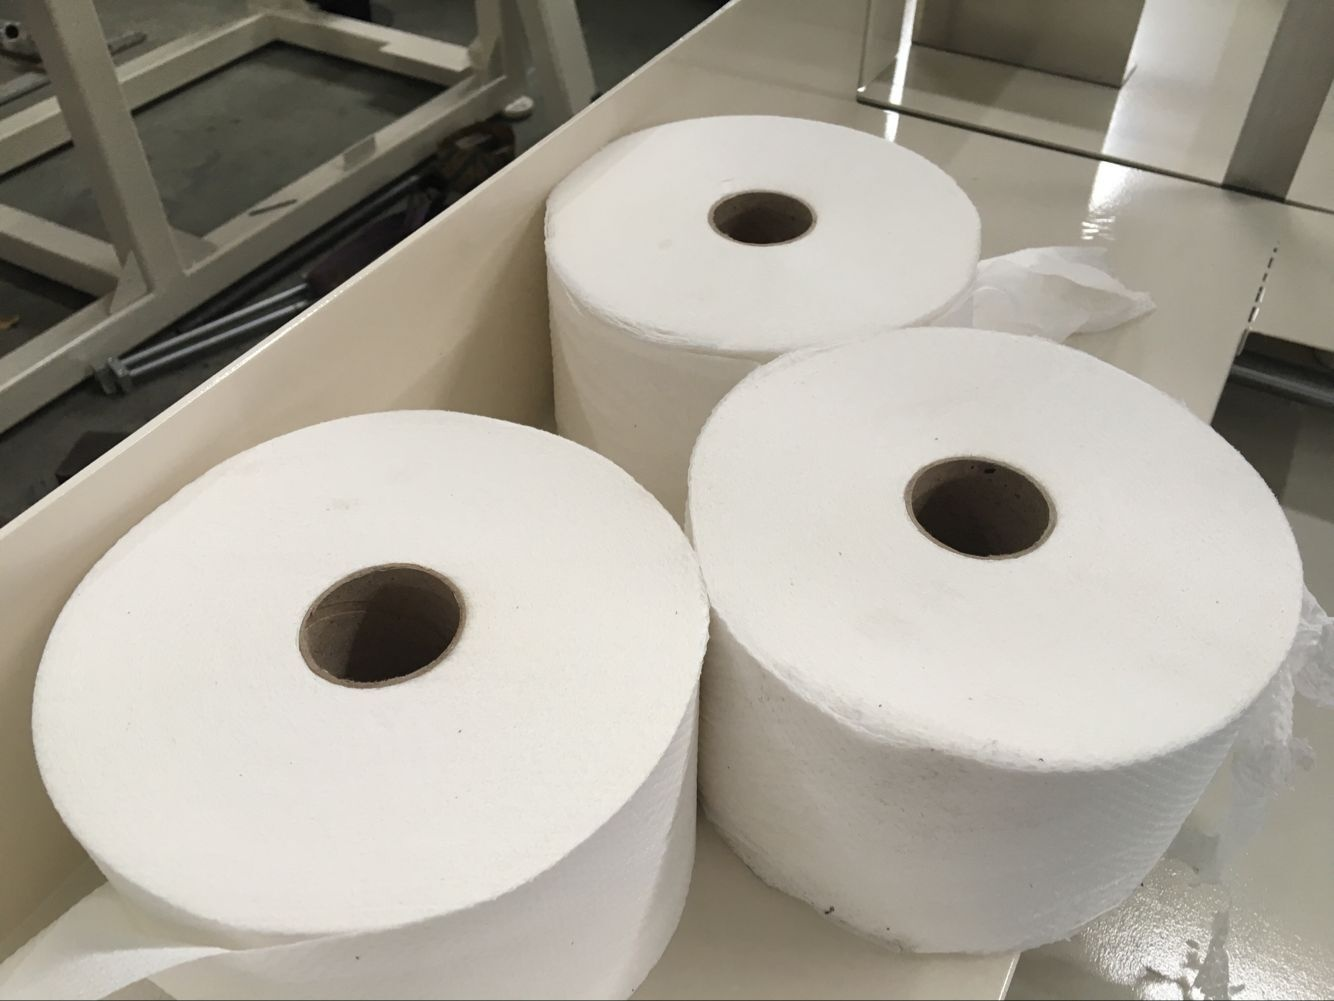 Many Inches Long Is A Toilet Paper Roll